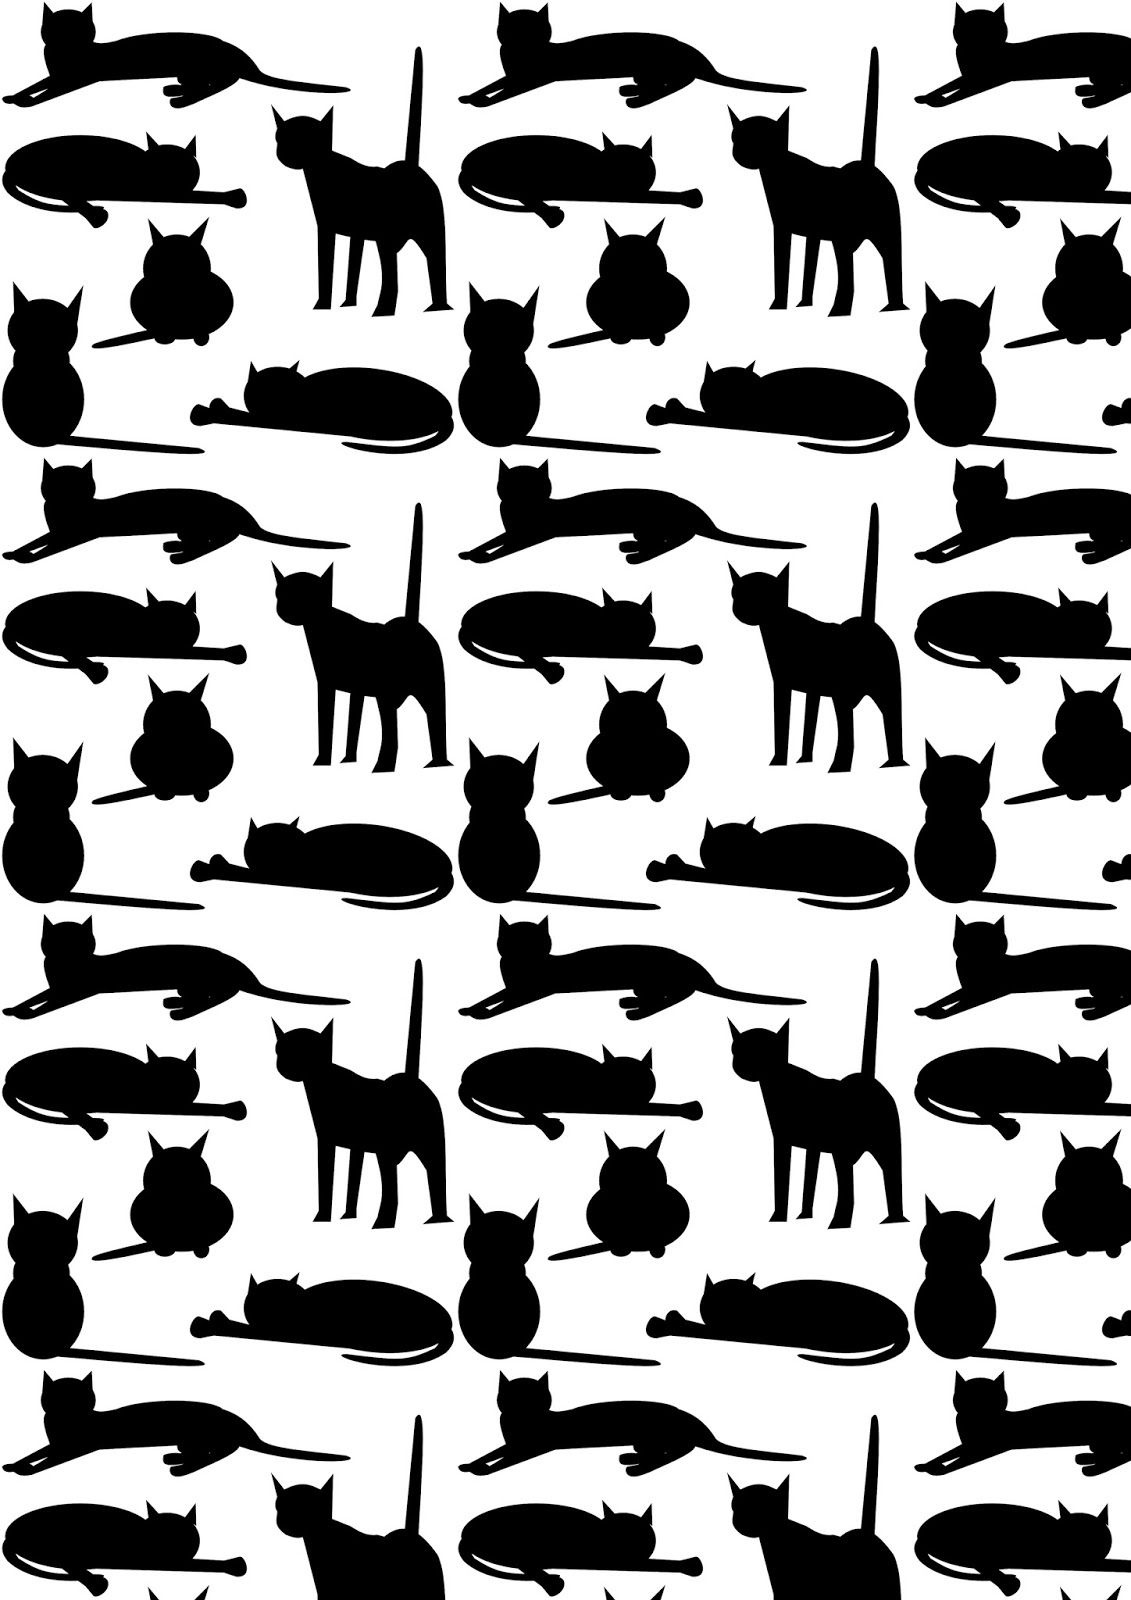 Today I Created Another Free Printable Cat Pattern Paper For You - Free Printable Cat Silhouette